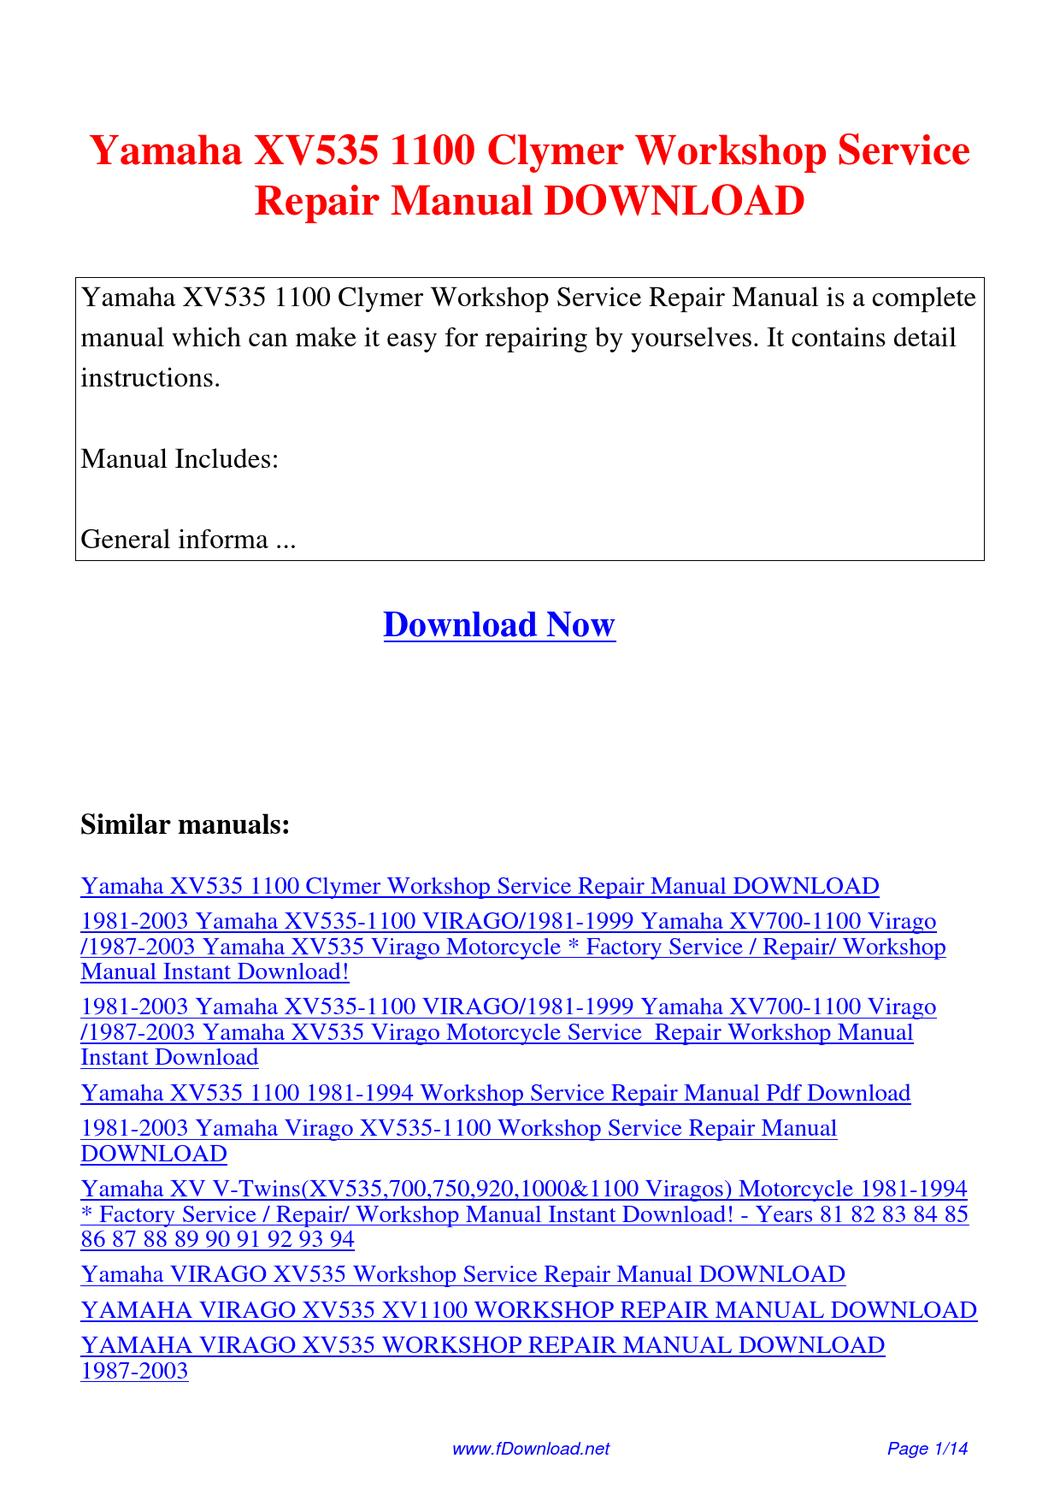 Yamaha Xv535 1100 Clymer Workshop Service Repair Manual By